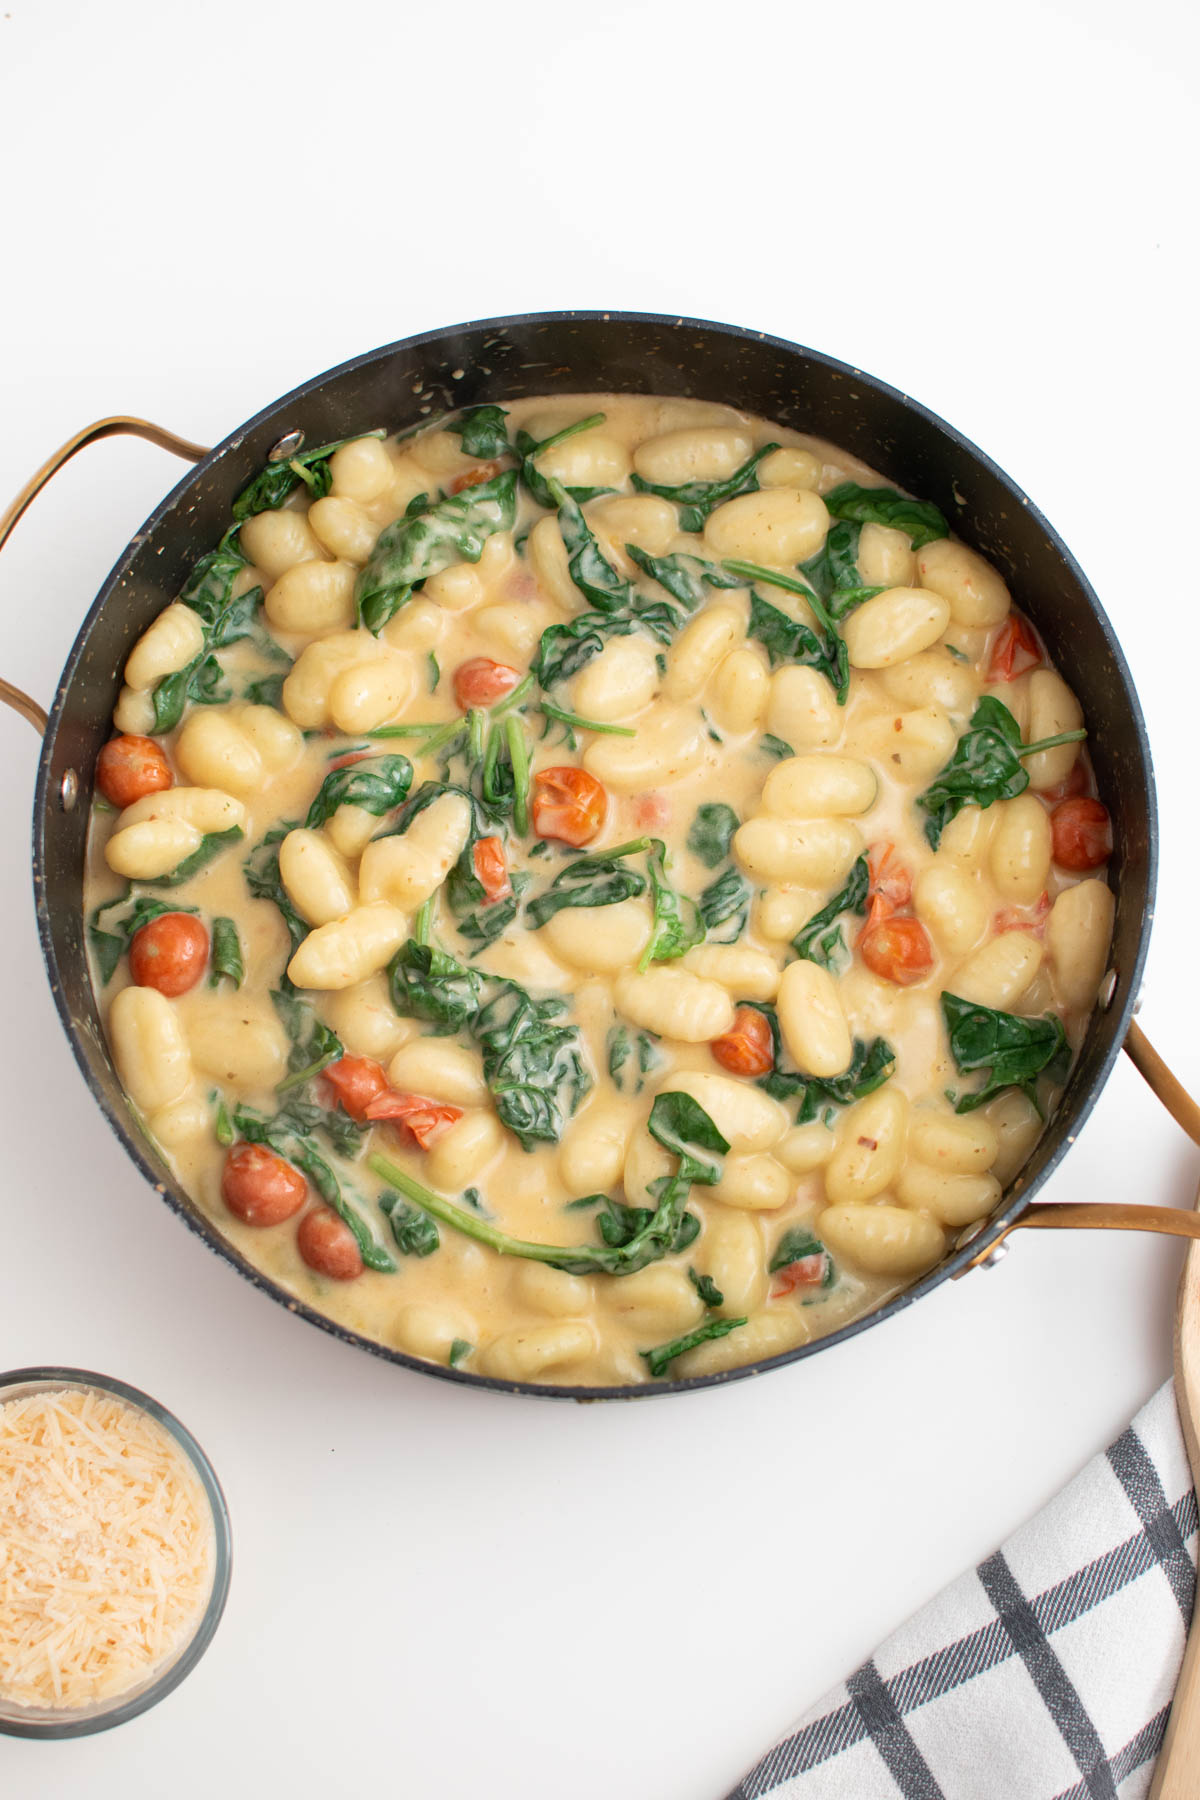 Large black skillet full of gnocchi, tomatoes, and spinach next to bowl of parmesan cheese.